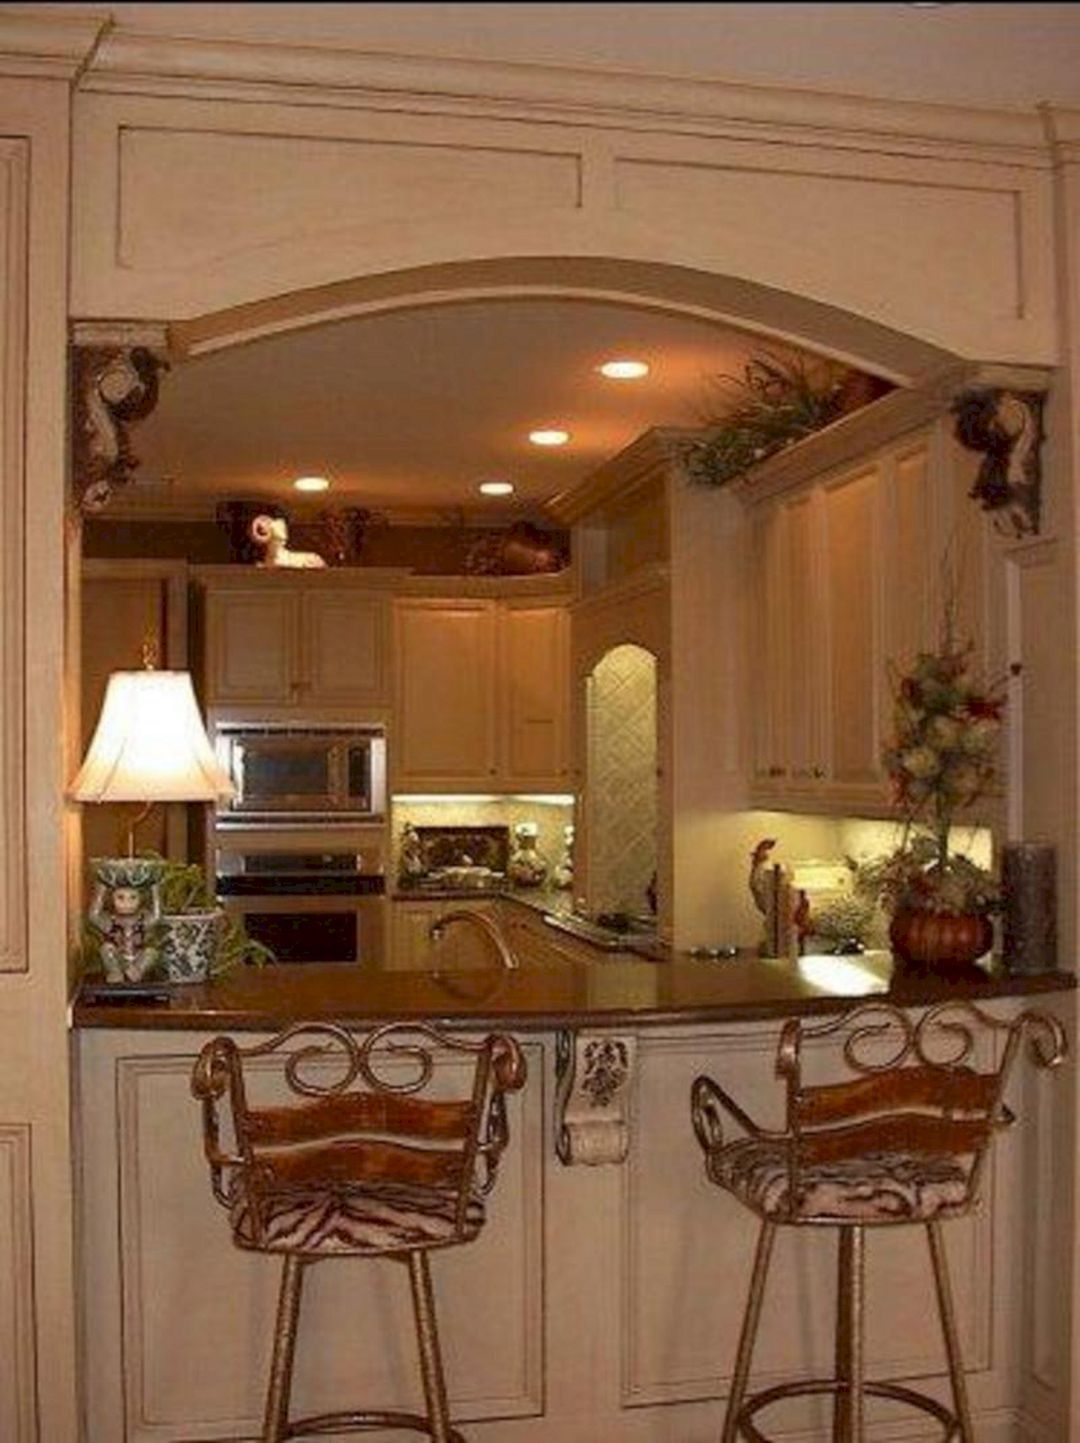 60 awesome kitchen countertop bar designs ideas for your on awesome modern kitchen design ideas id=65489